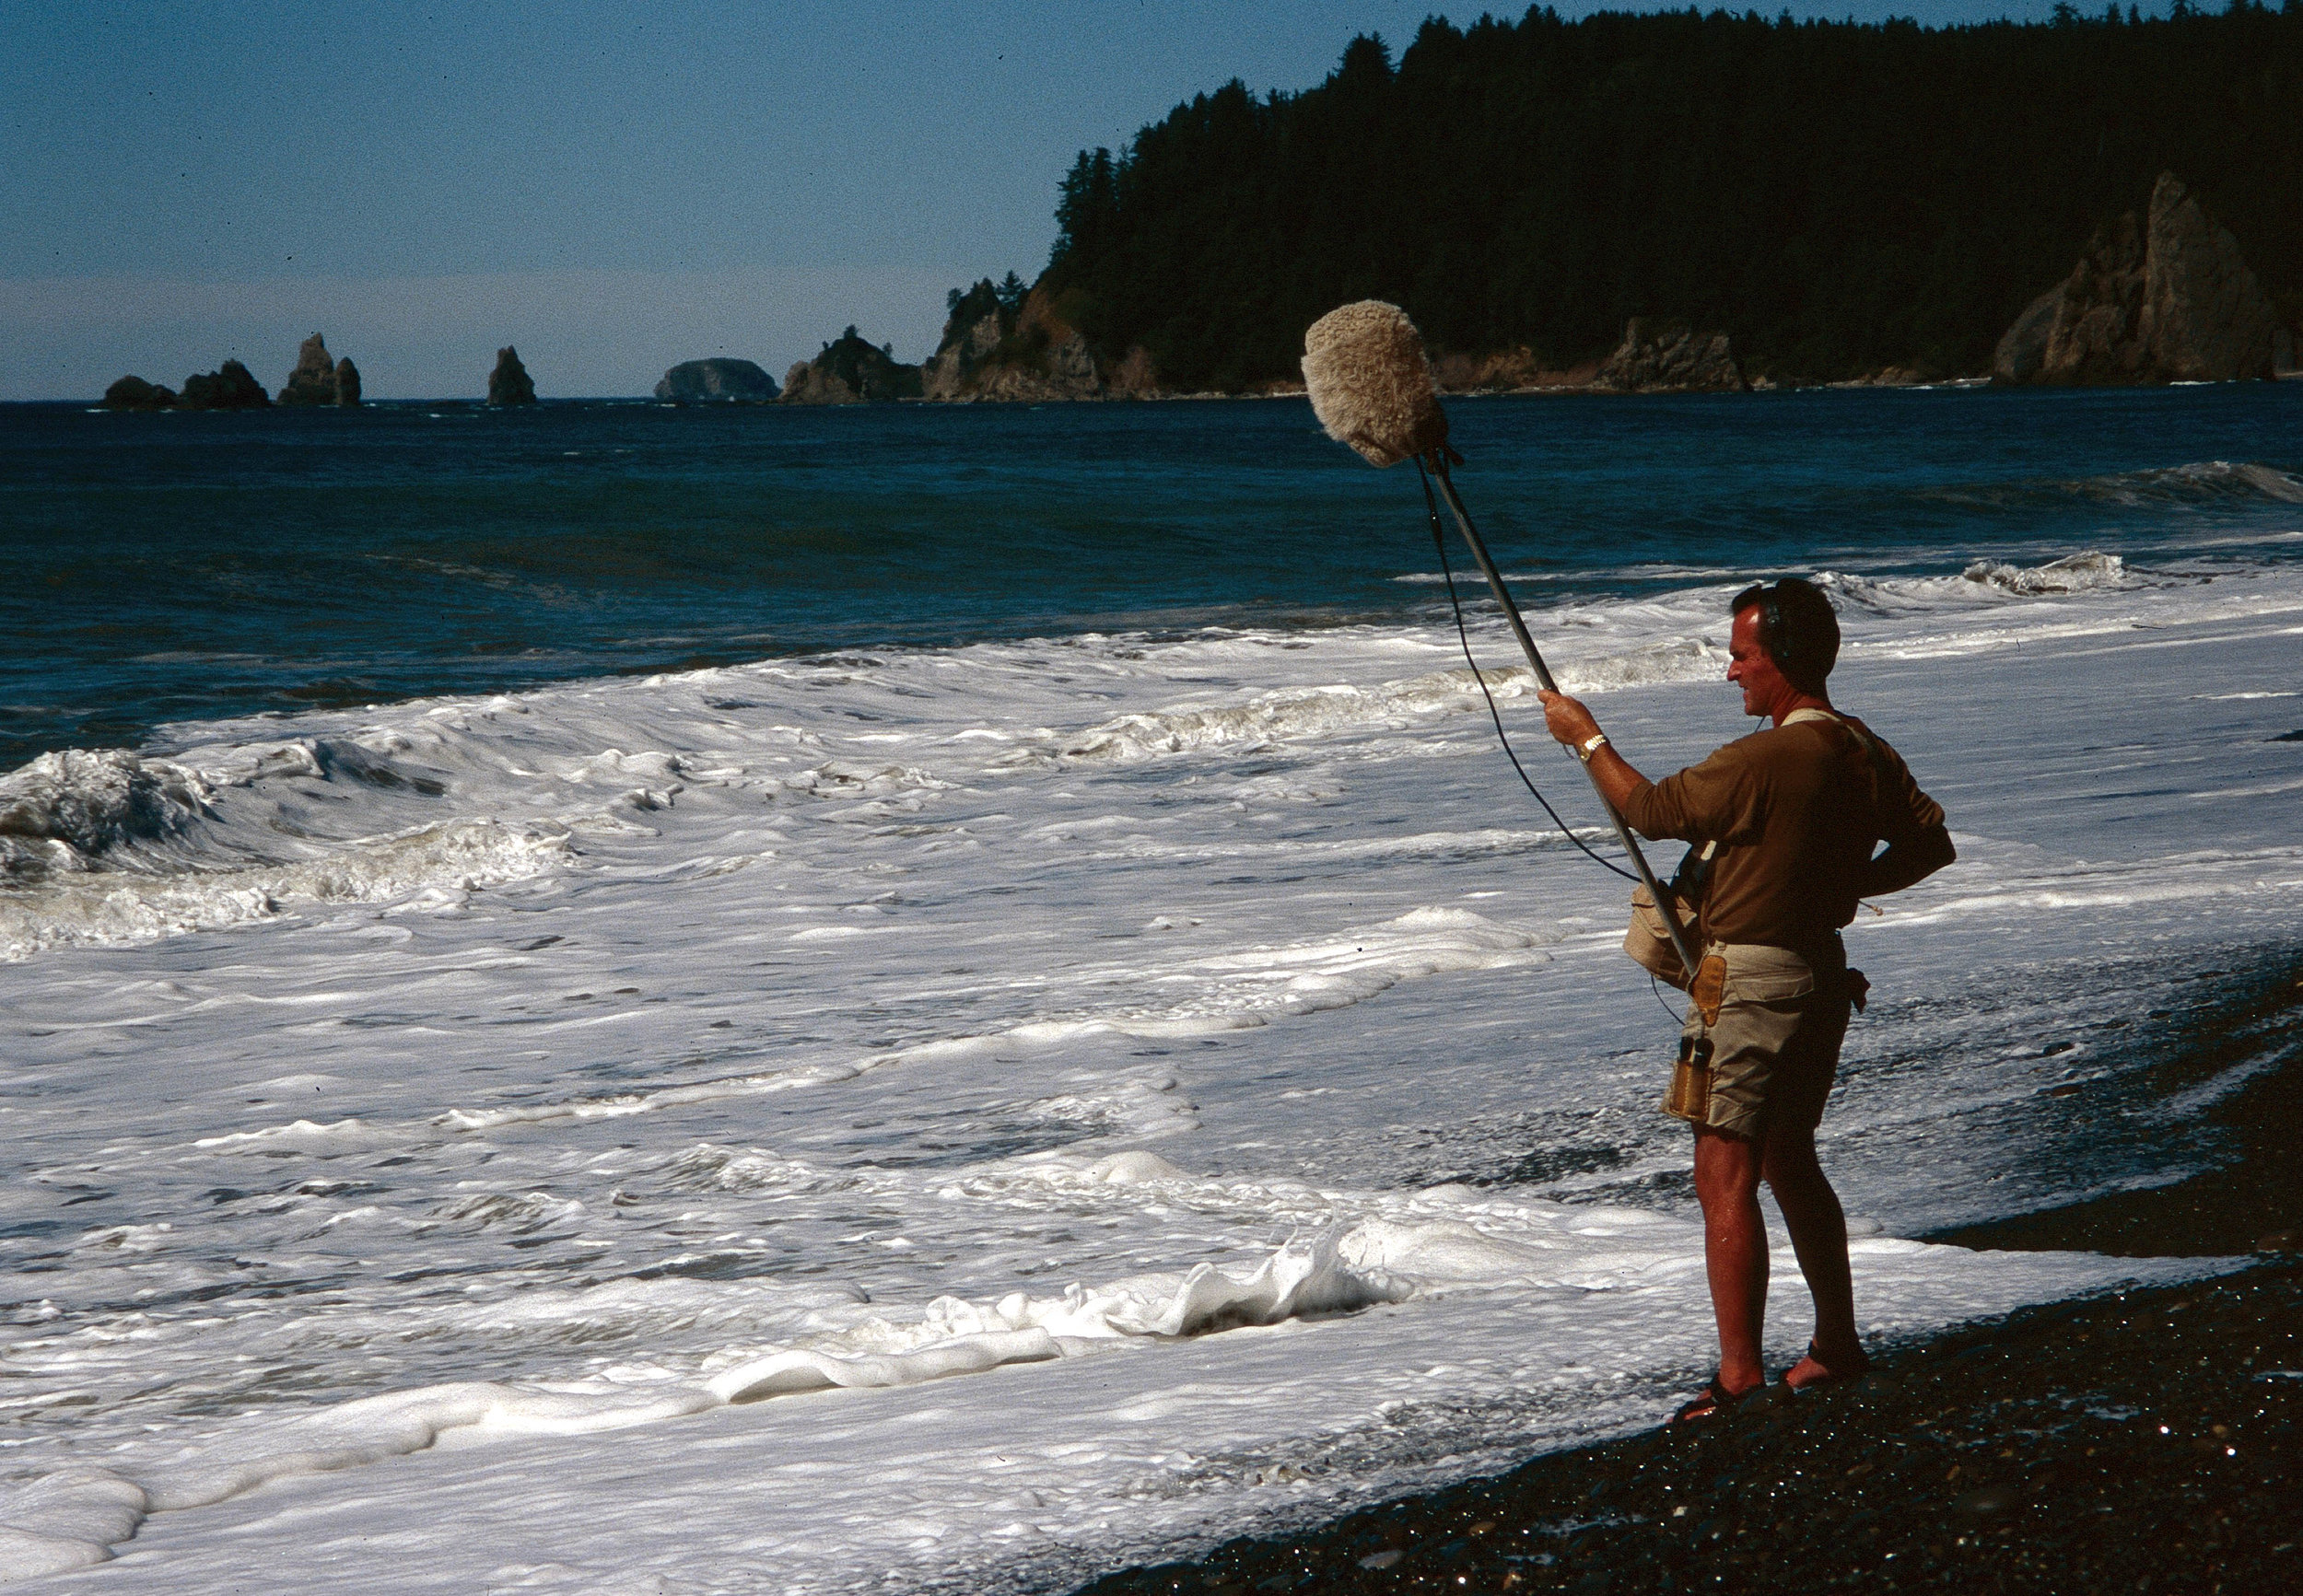 Gordon Hempton, sound tracker, Olympic National Park